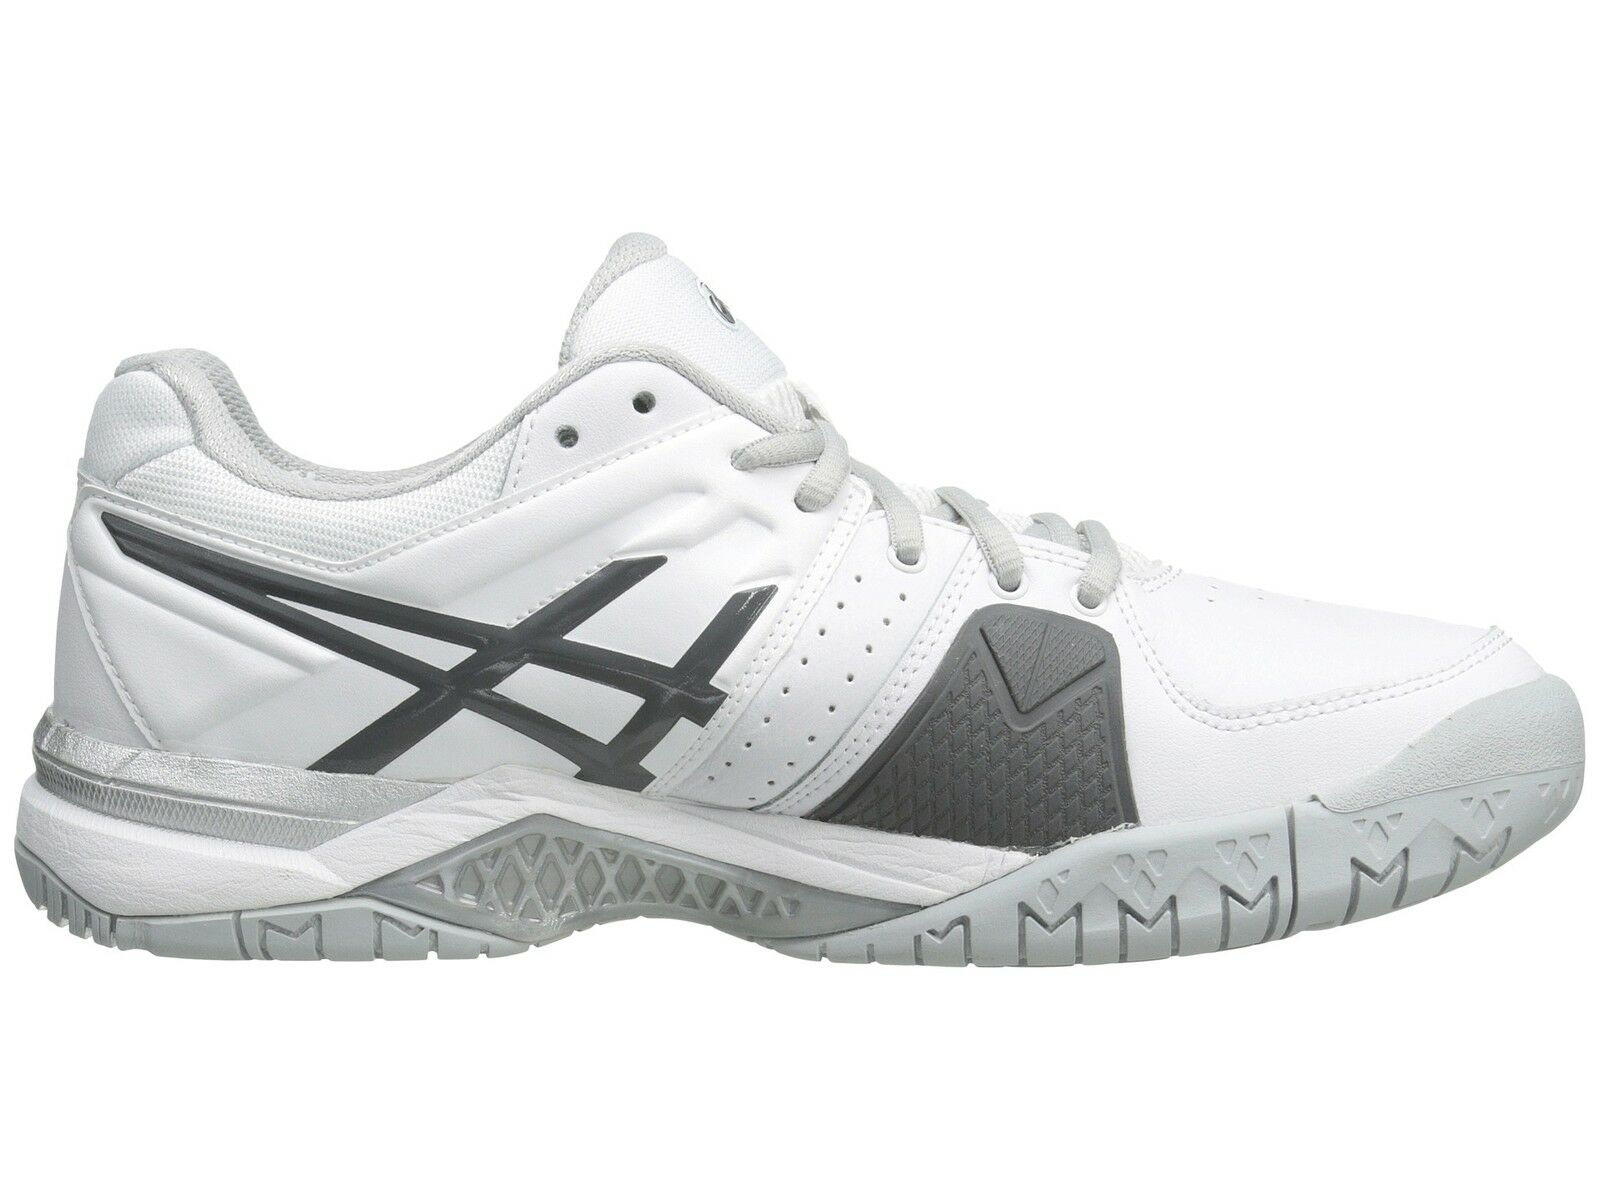 Asics Gel Gel Gel Encourage LE damen Damen Tennisschuh c1a5ec